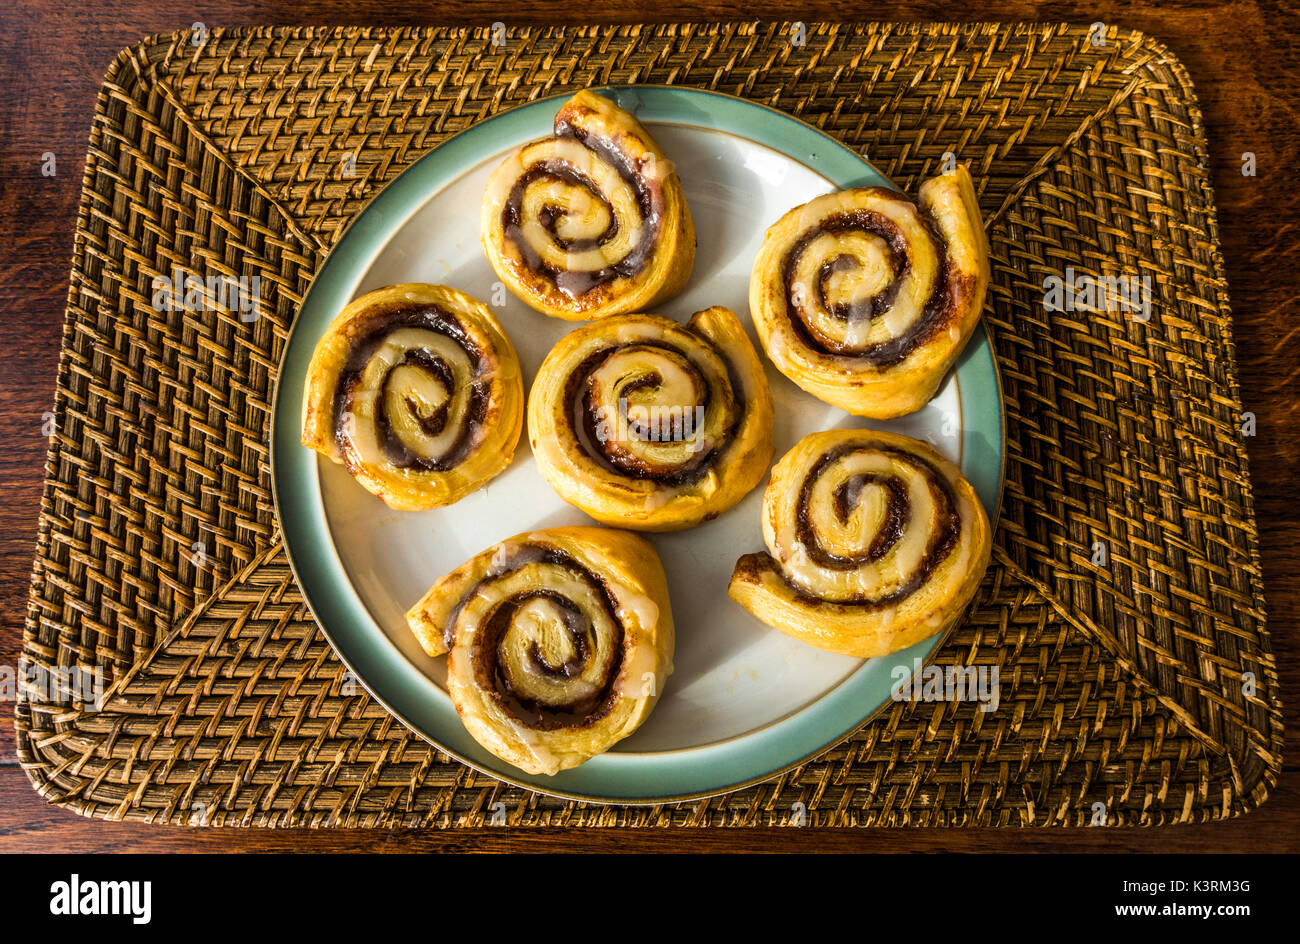 Homemade, oven baked, cinnamon swirls, with melted marmalade and icing sugar topping, laid out on a plate, on a wicker mat, ready to eat. England, UK. - Stock Image